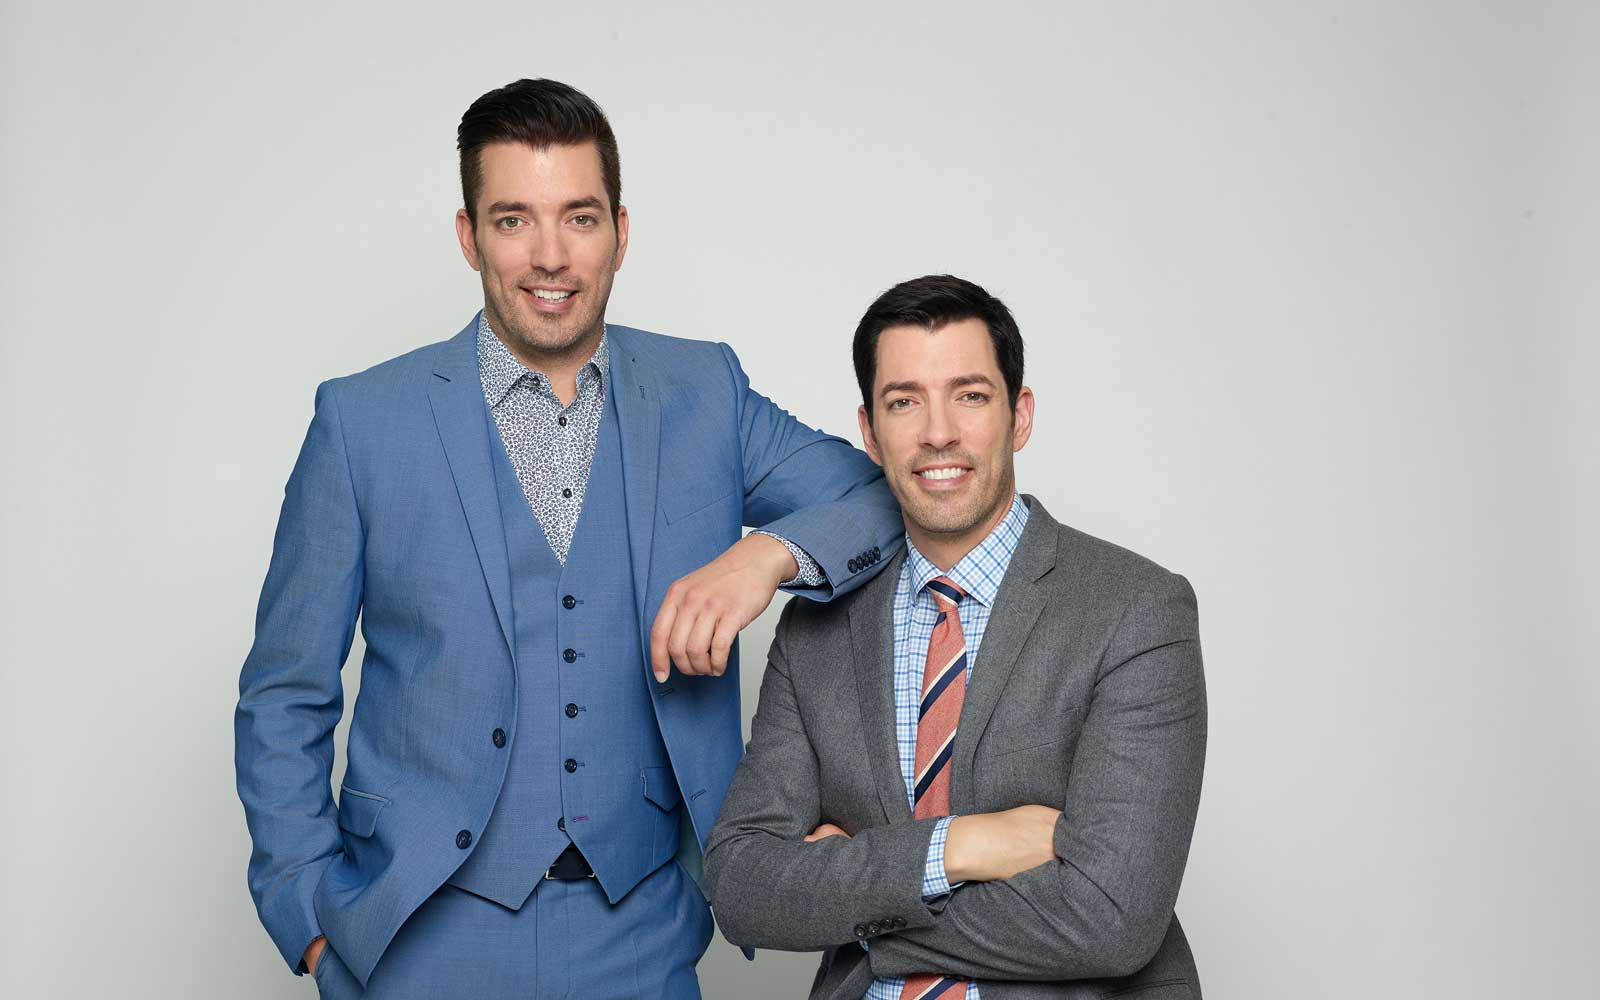 Everything You Want to Know About the 'Property Brothers' Cruise to the Bahamas